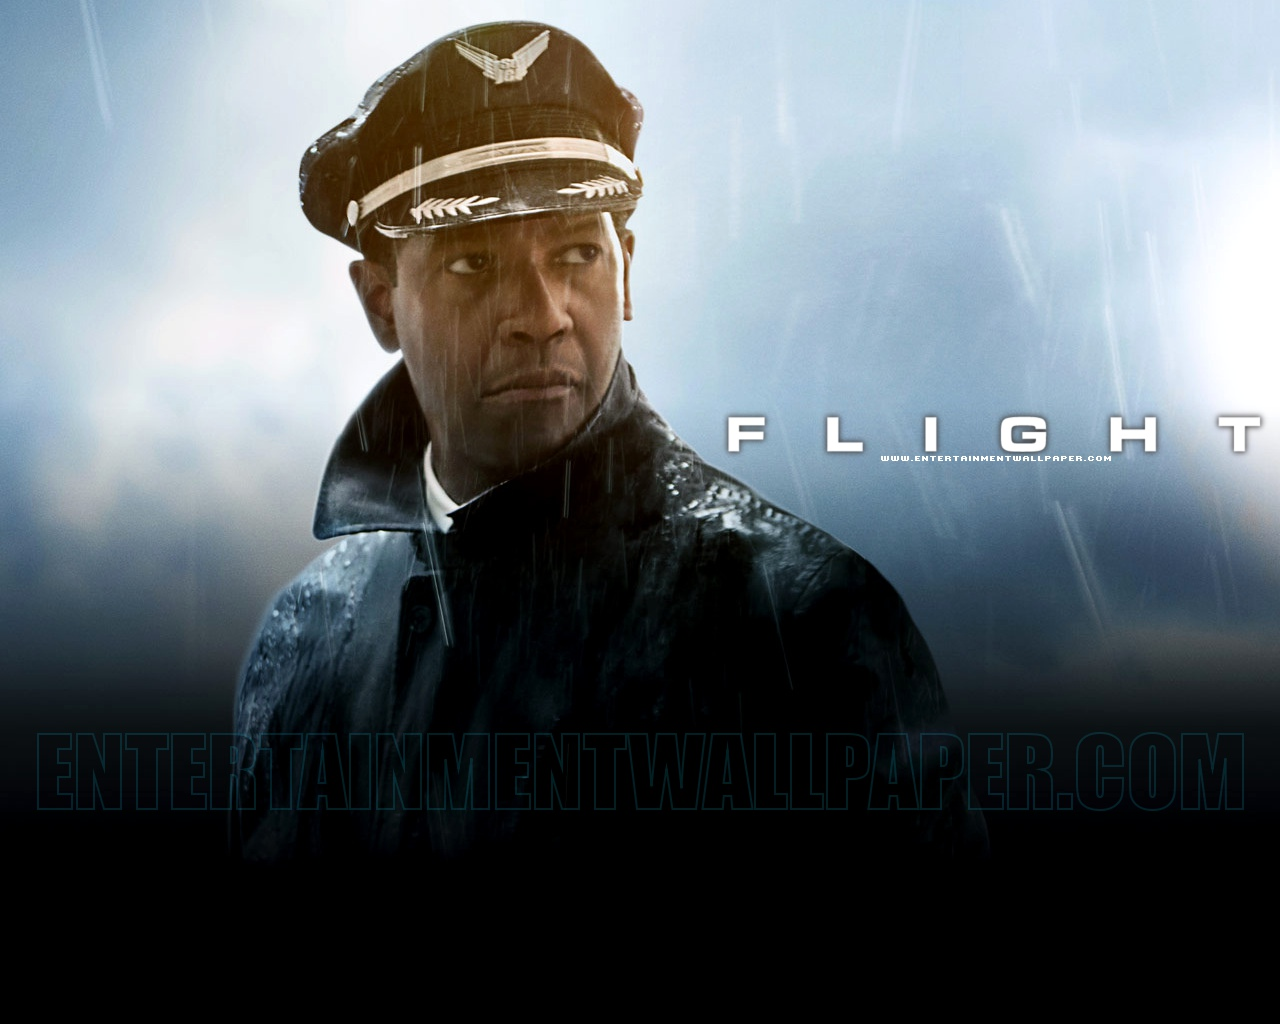 tv show flight wallpaper 10035102 size 1280x1024 more flight wallpaper 1280x1024